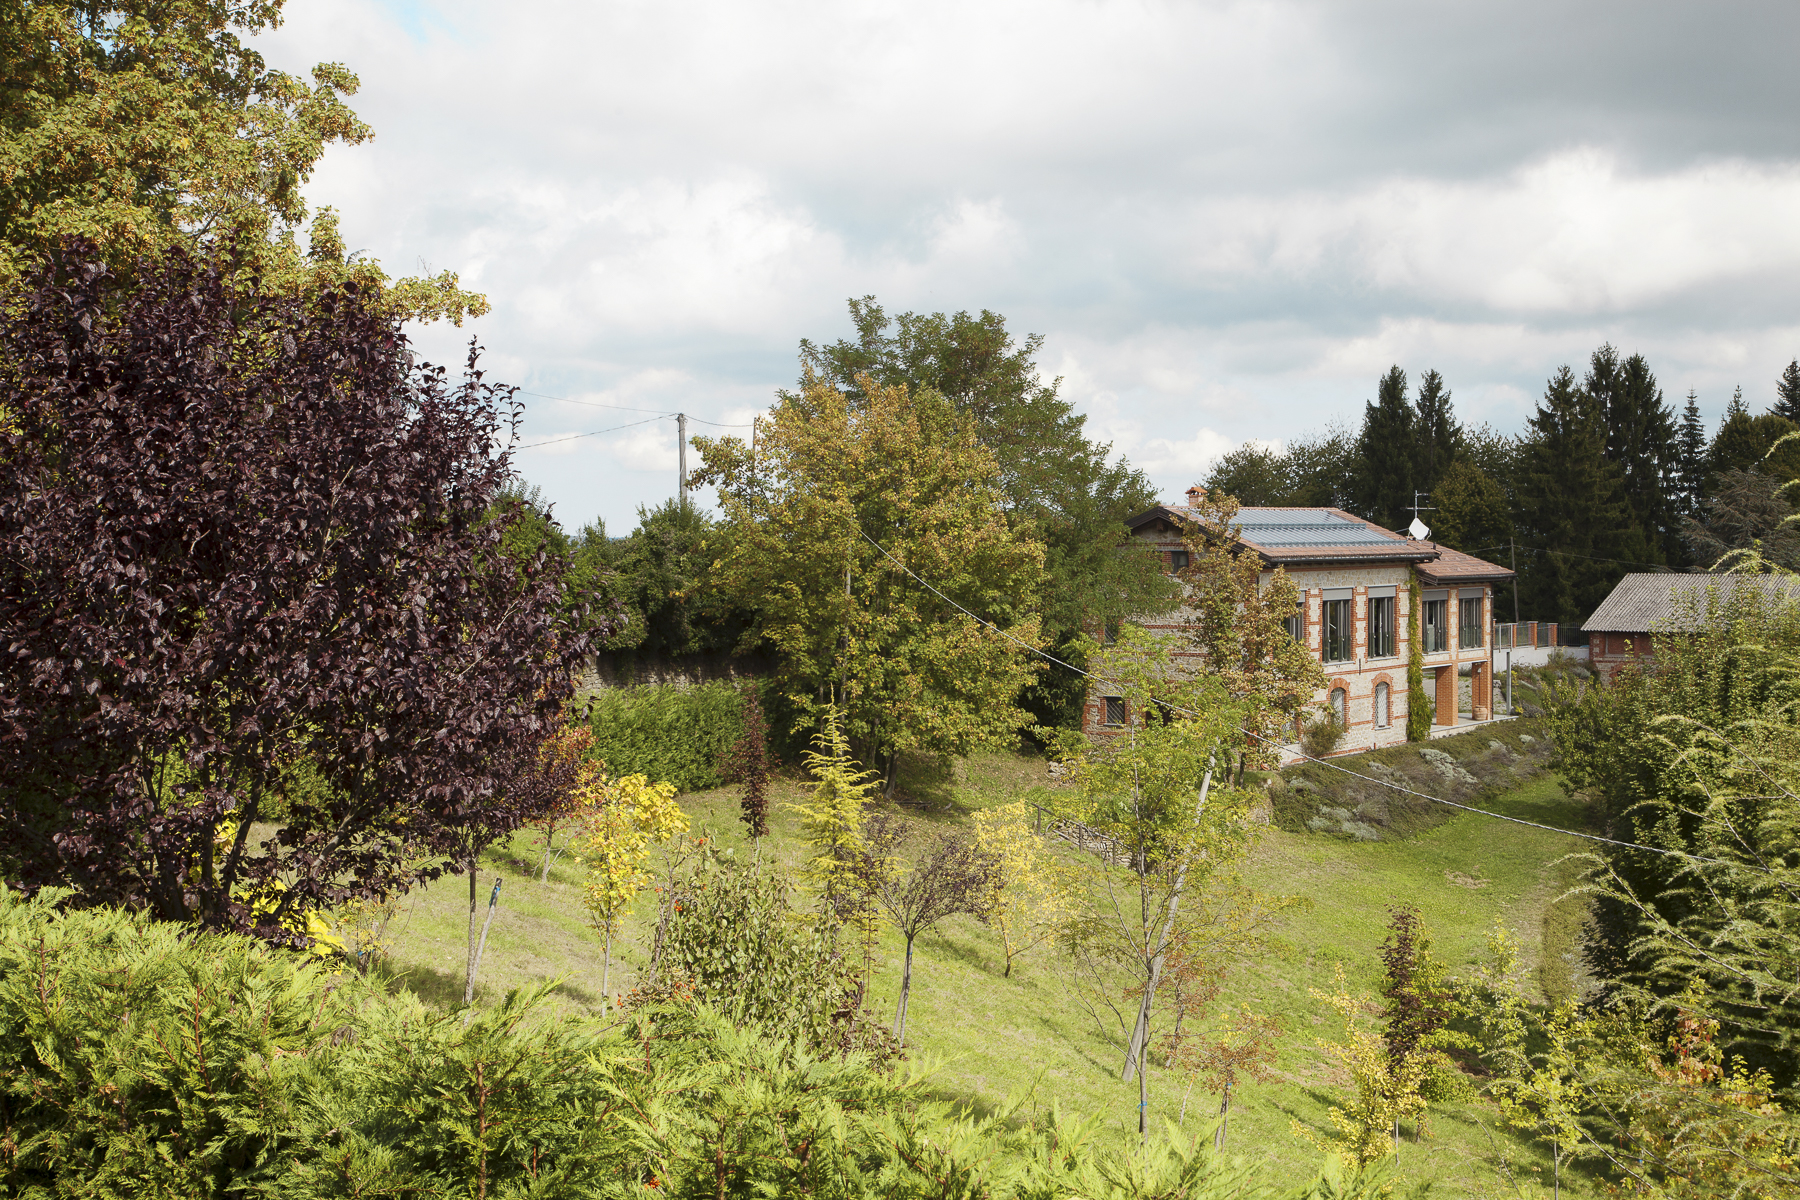 Single Family Home for Sale at Country Home overlooking val Bormida Via Nazionale Other Savona, 17017 Italy